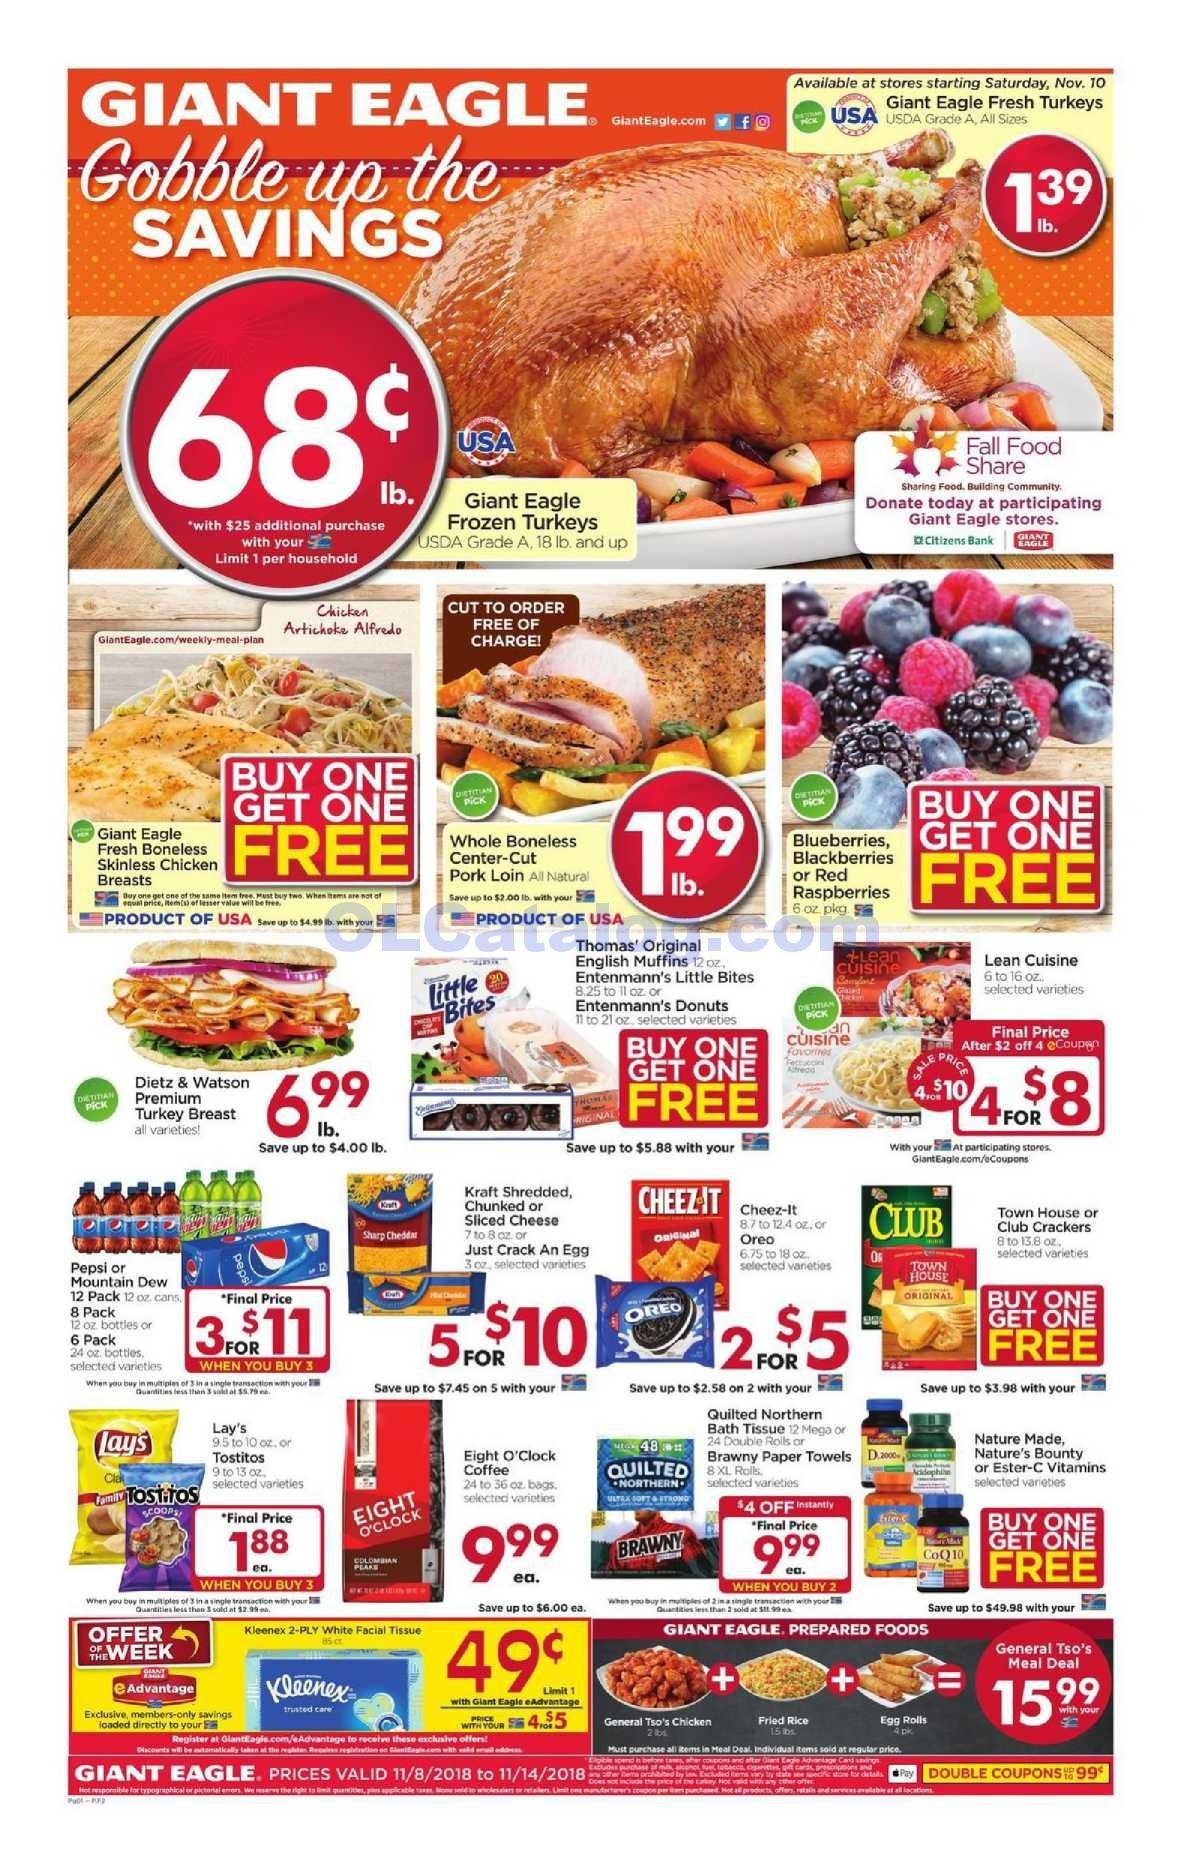 Giant eagle weekly ad september 26 october 2 2019 dicas